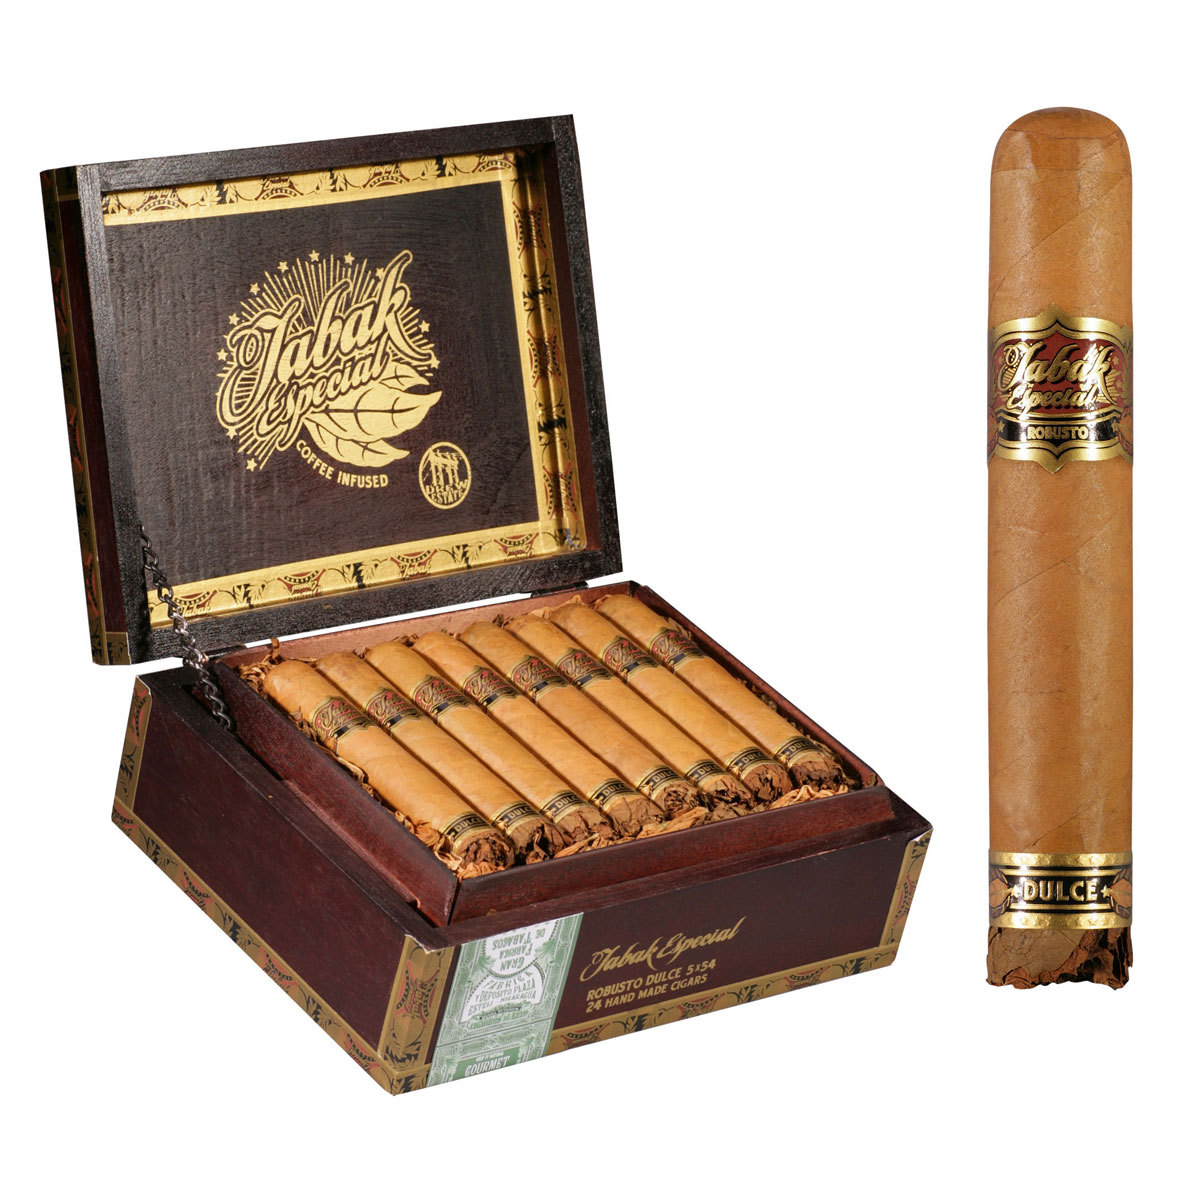 Robusto, Dulce - Box of 24